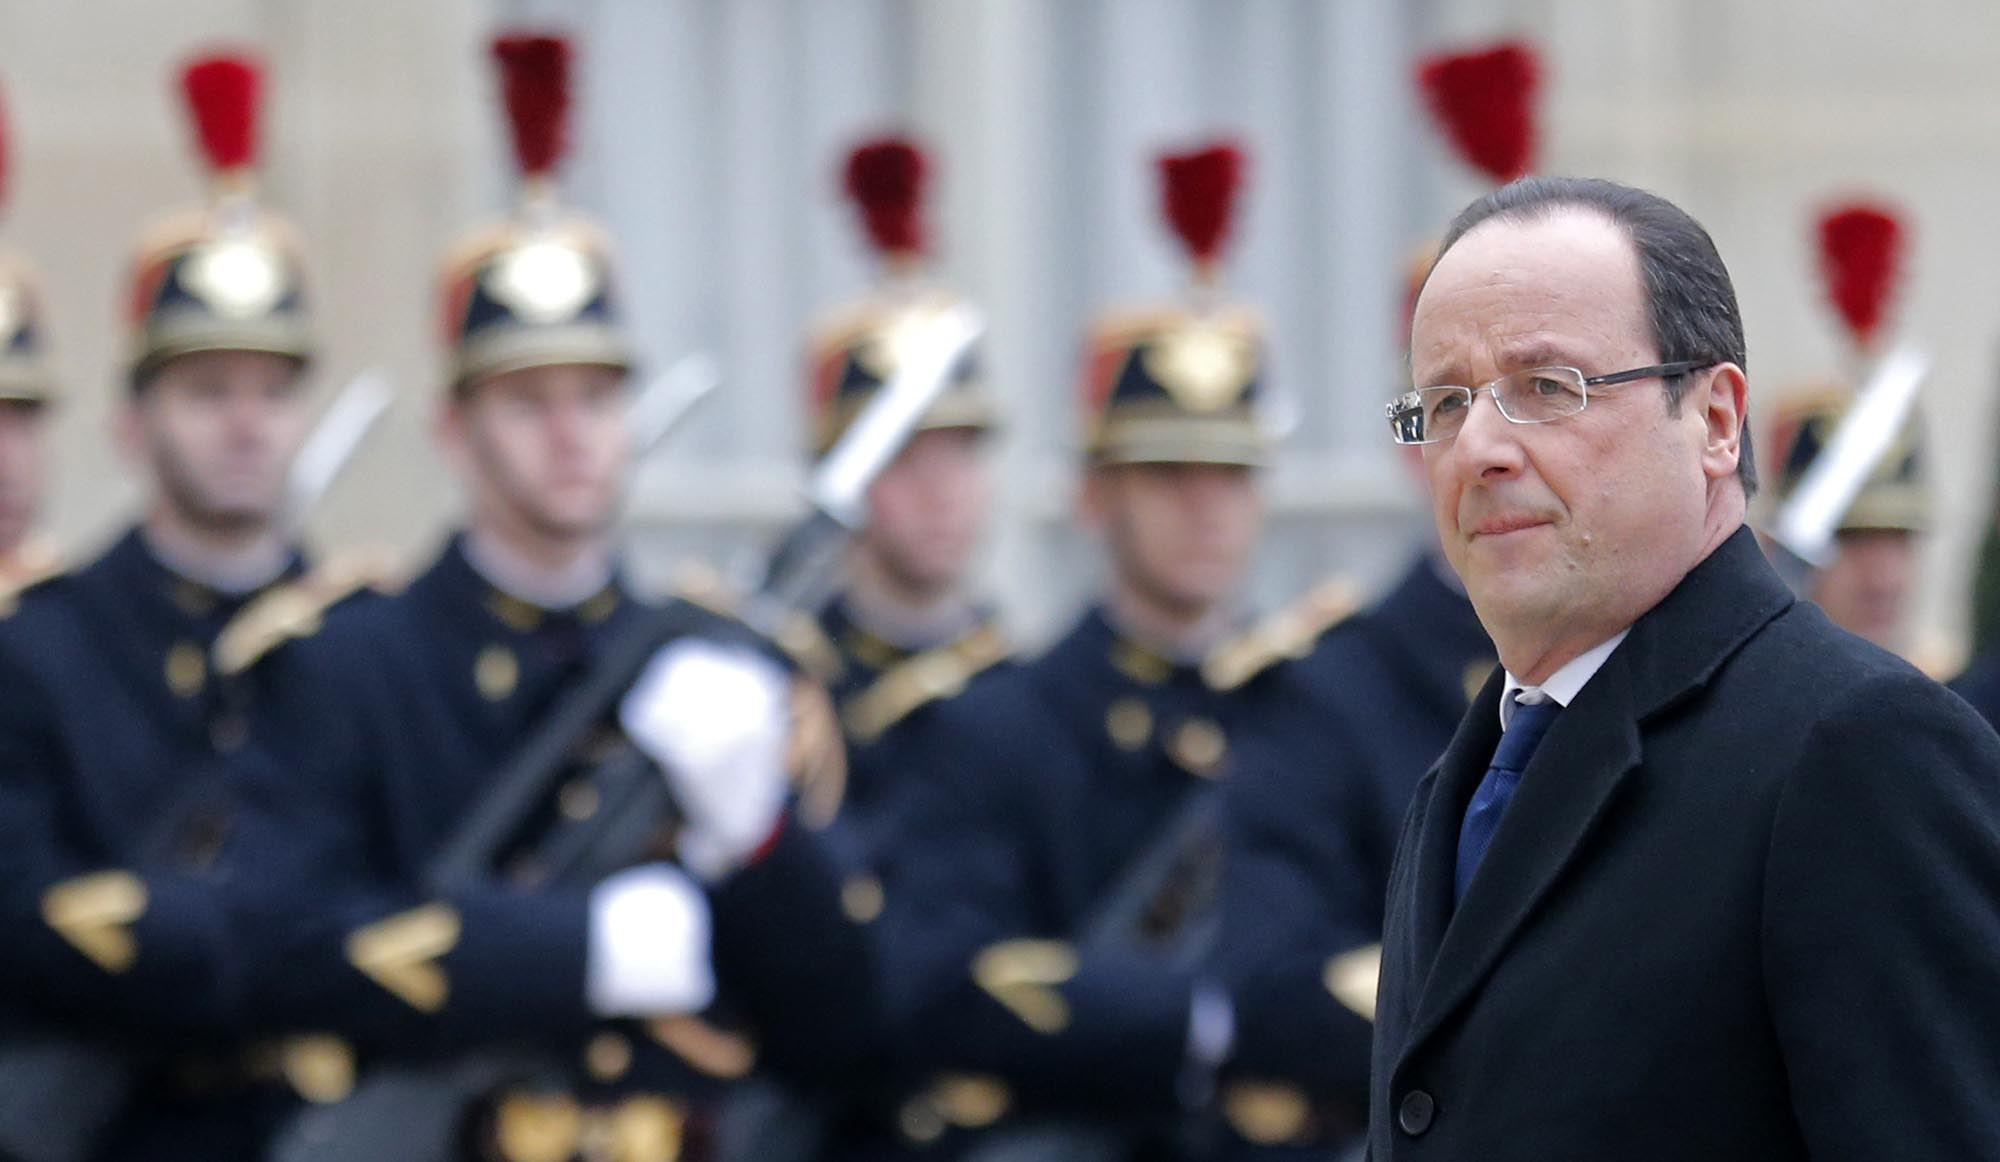 French President Francois Hollande walks past the honour guard as he arrives for a meeting with a guest at the Elysee Palace in Paris